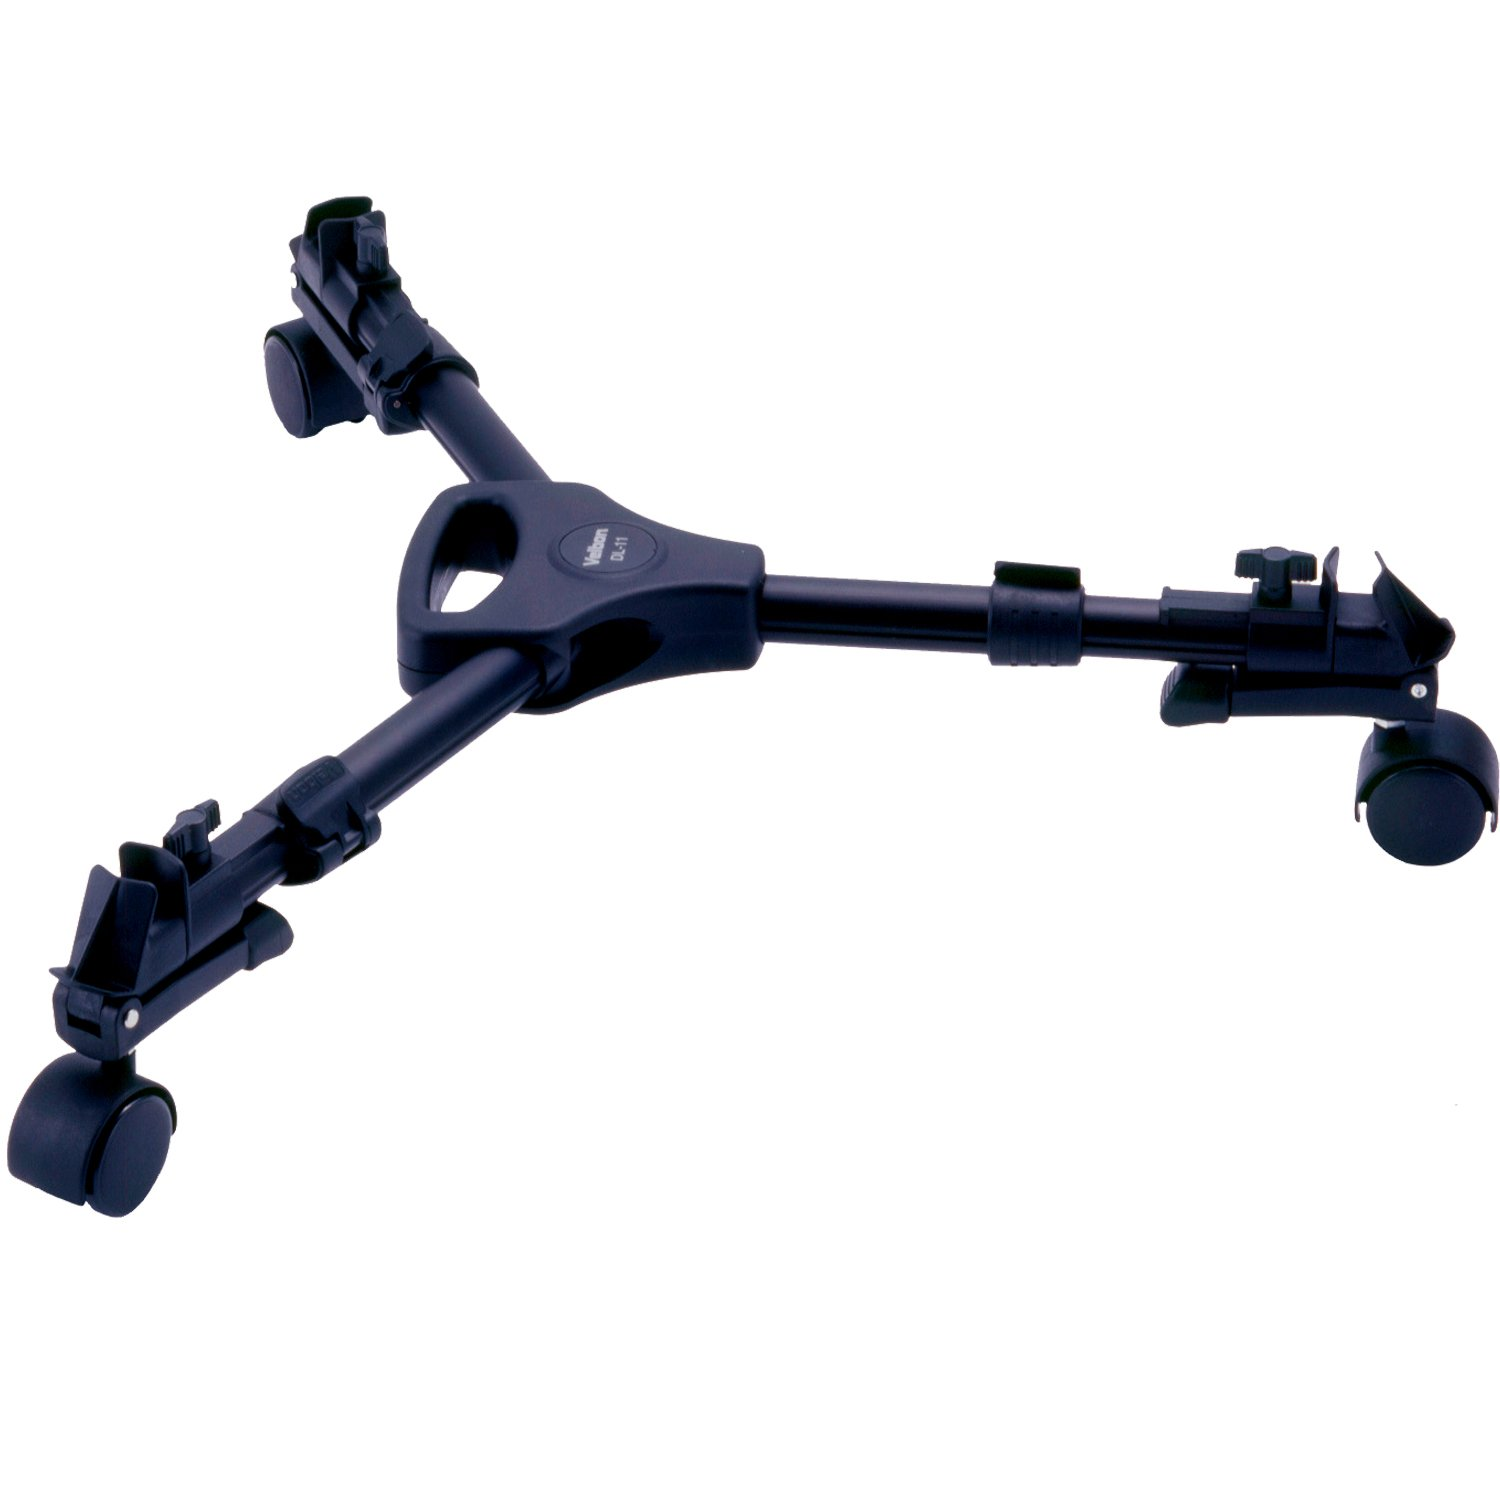 Velbon 2375 Tripod Dolly DL-11